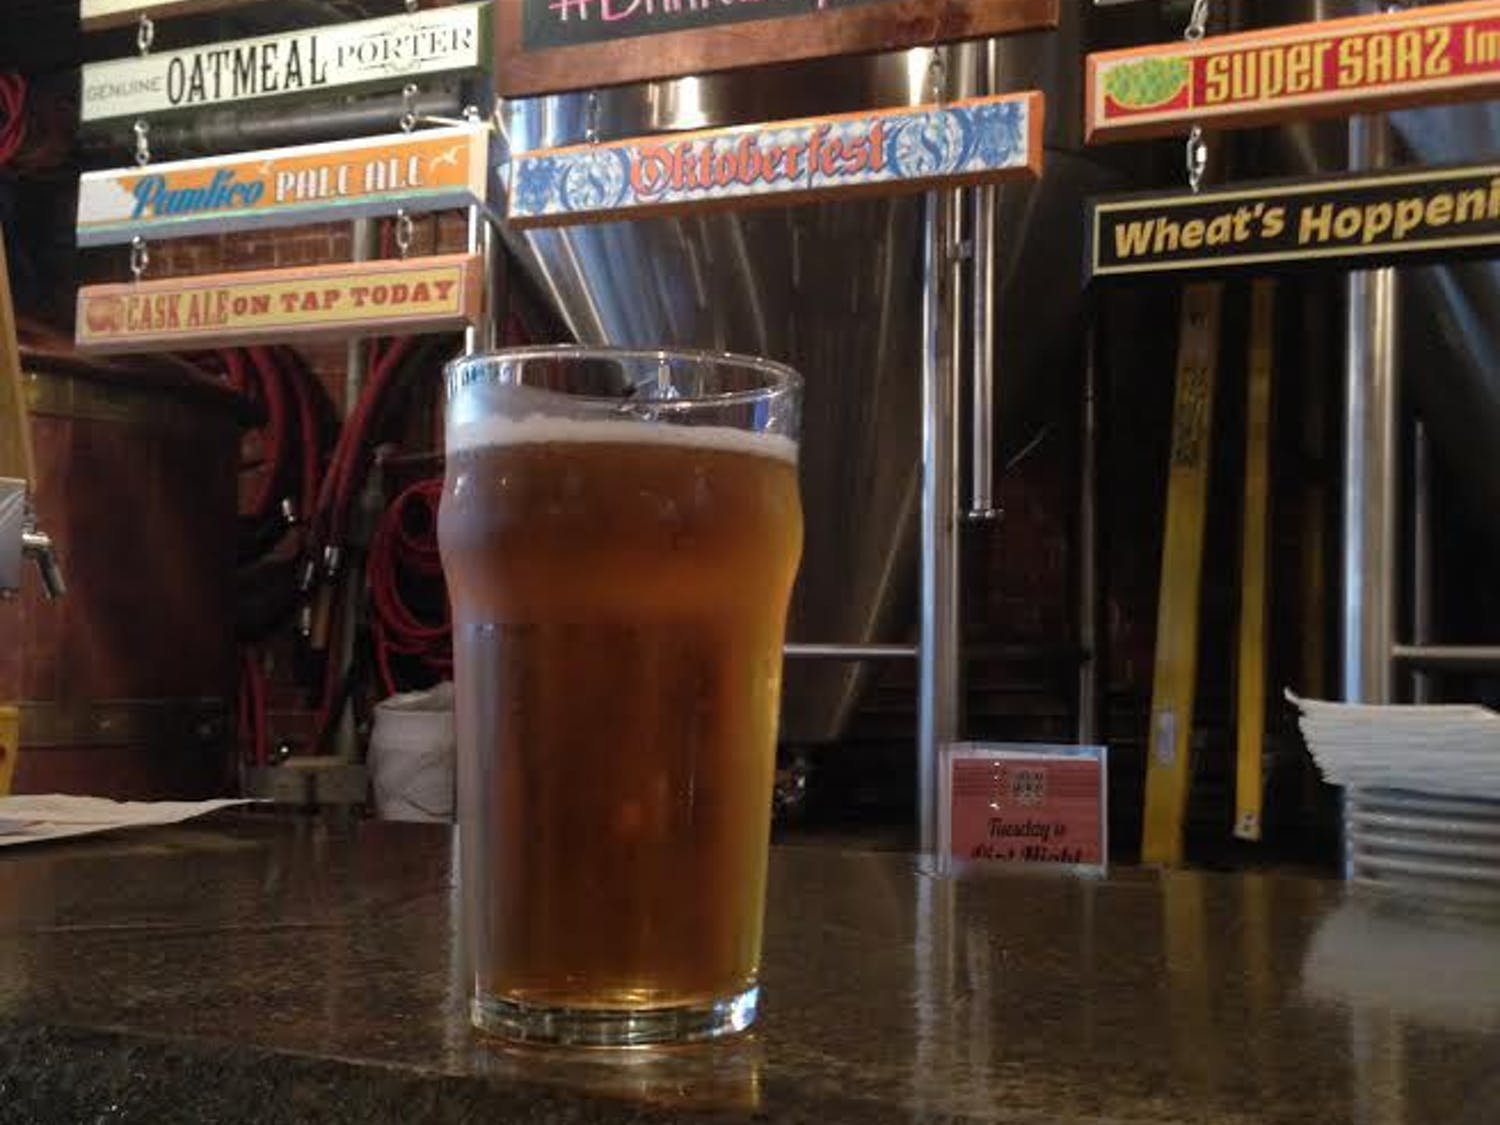 The Great American Beer Festival will include local brewers. The festival starts tomorrow and runs through the 8th.